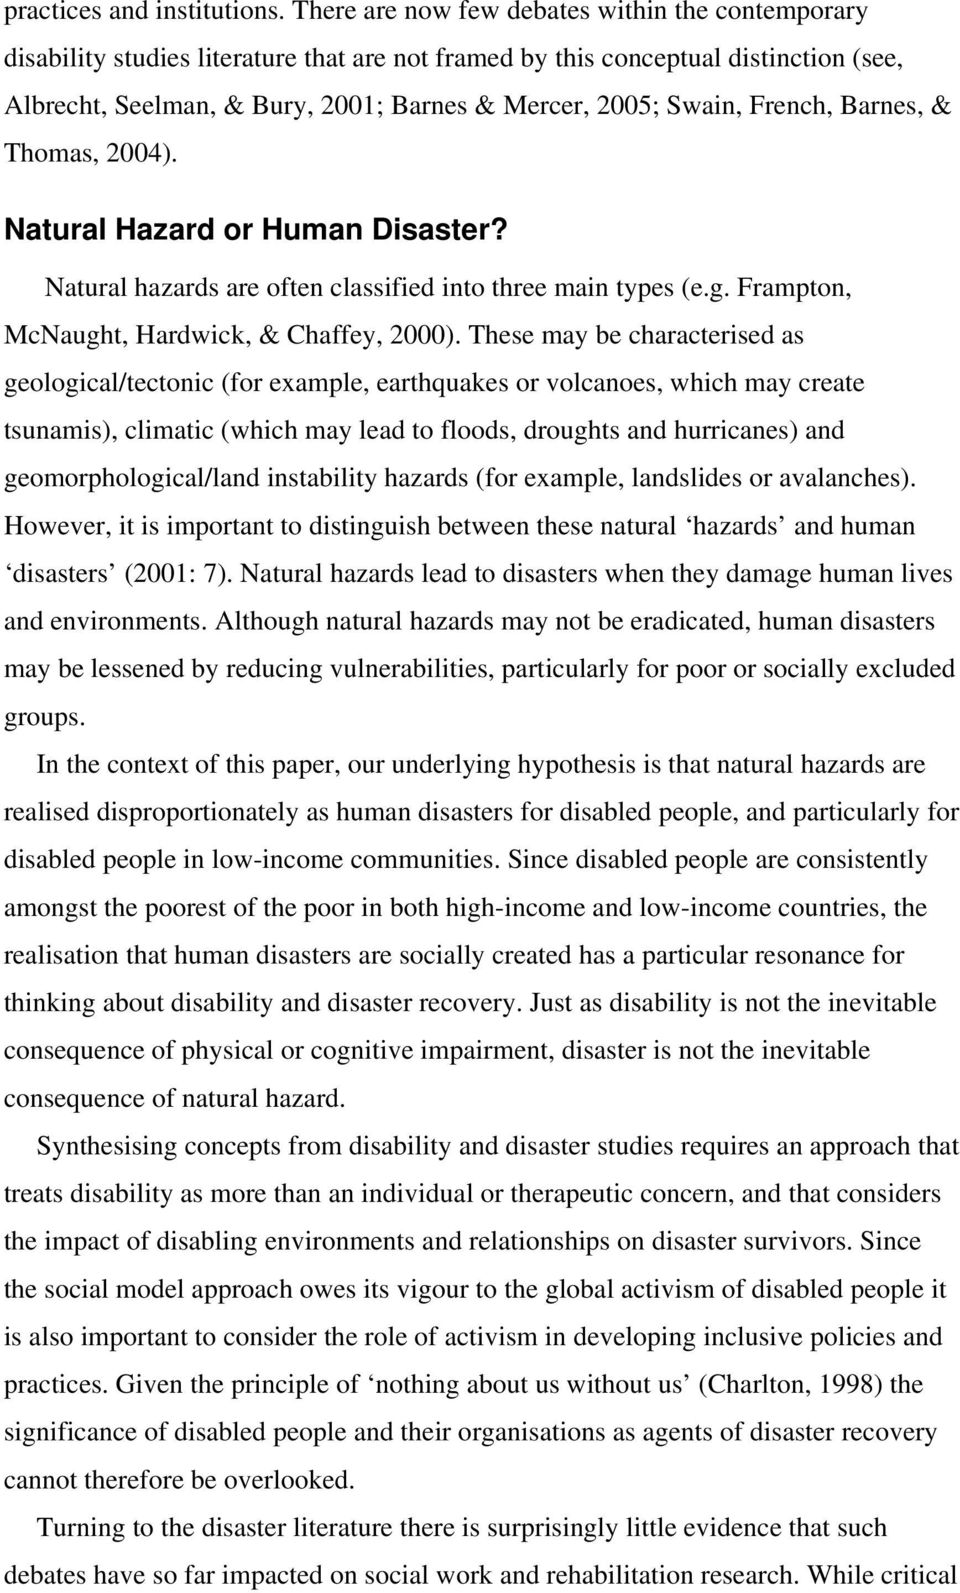 French, Barnes, & Thomas, 2004). Natural Hazard or Human Disaster? Natural hazards are often classified into three main types (e.g. Frampton, McNaught, Hardwick, & Chaffey, 2000).